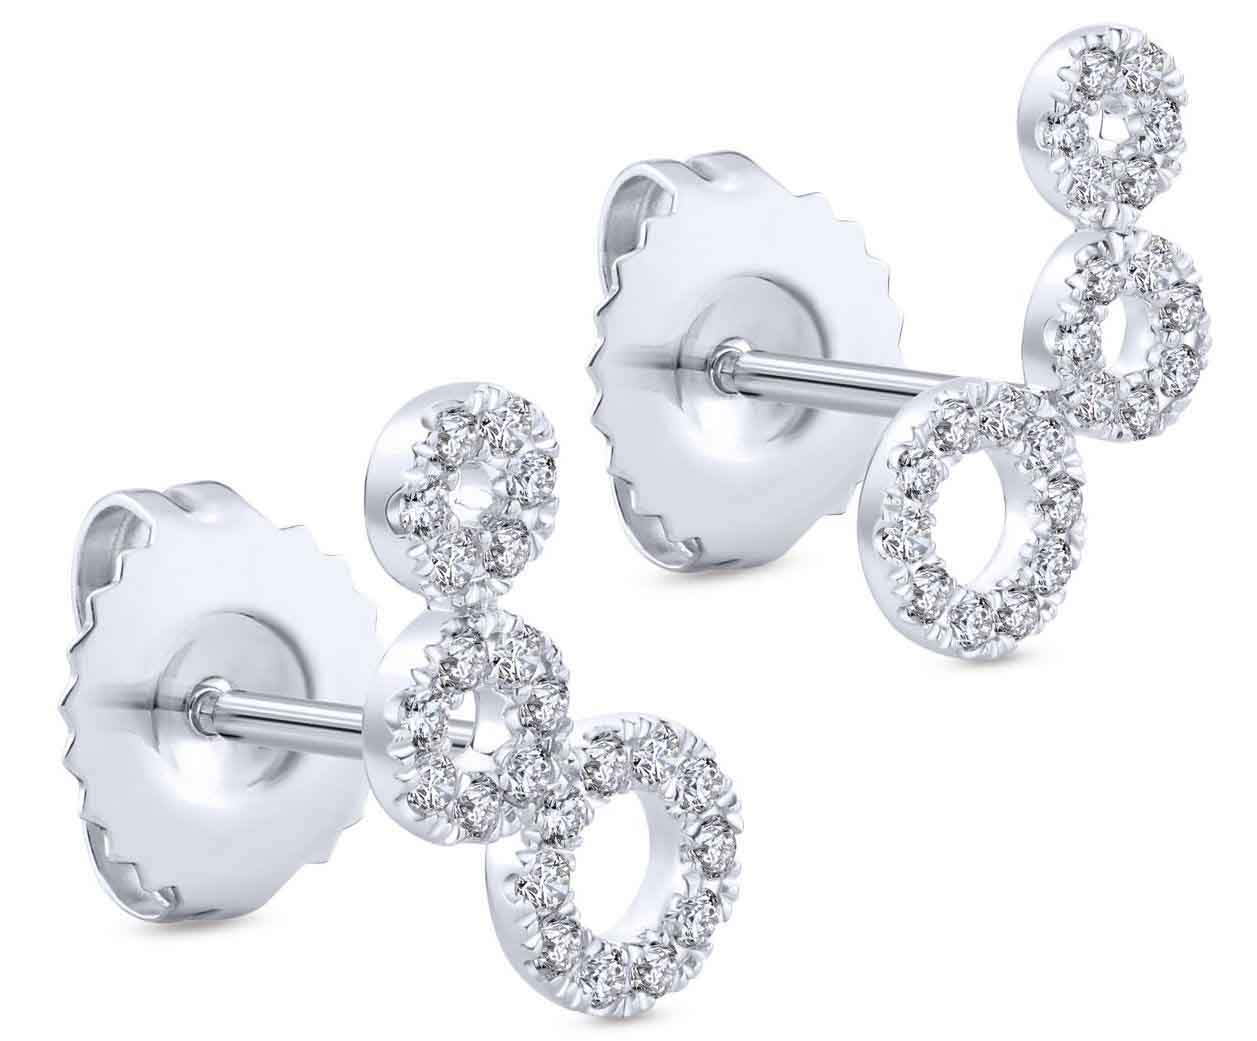 Comets stud earrings in 14k white gold with diamonds